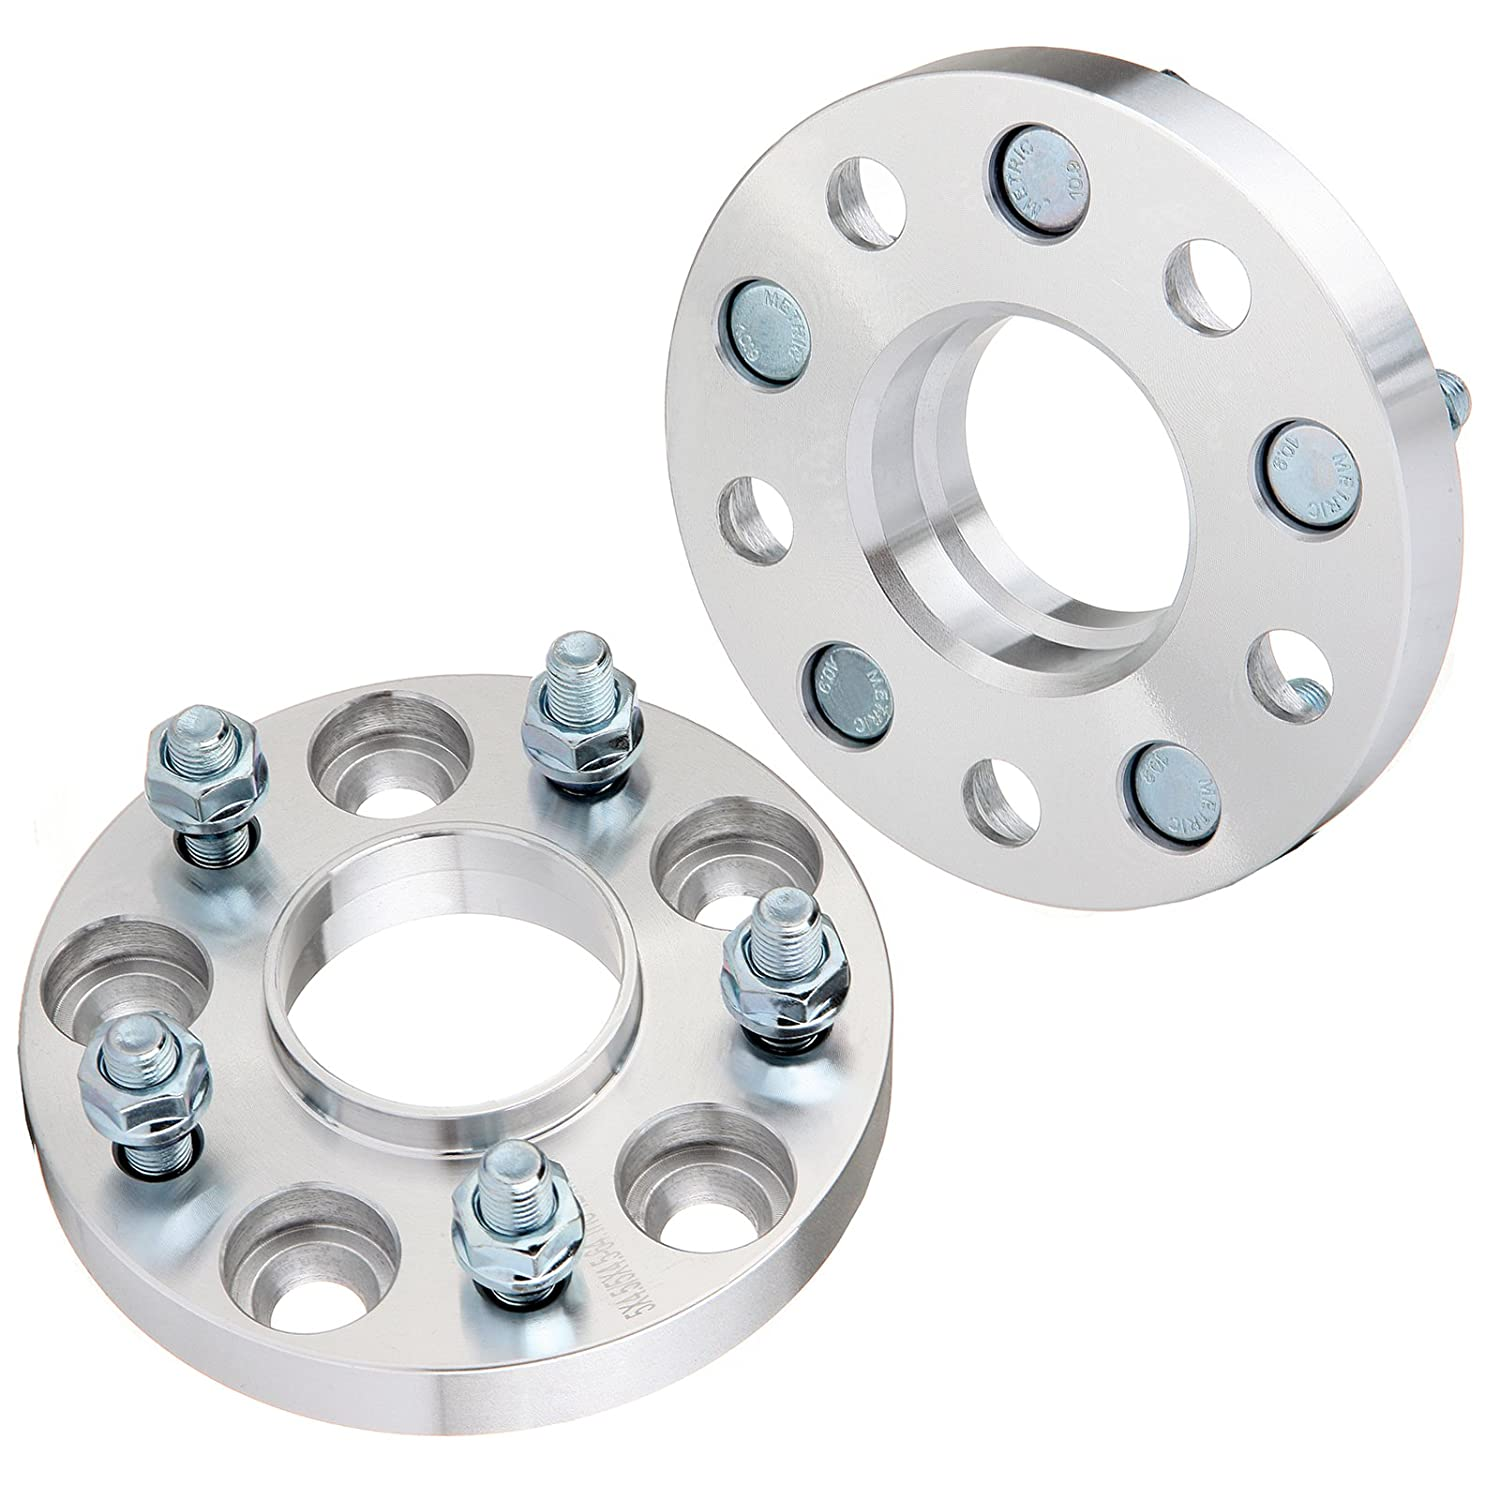 ECCPP 2X 5 lug Hubcentric Wheel Spacers 20mm 5x4.5 to 5x4.5 64.1mm for Honda Accord Civic CR-Z CR-V Element Odyssey Pilot S2000 Prelude| Acura series with 12x1.5 Studs 802128-5211-1151461